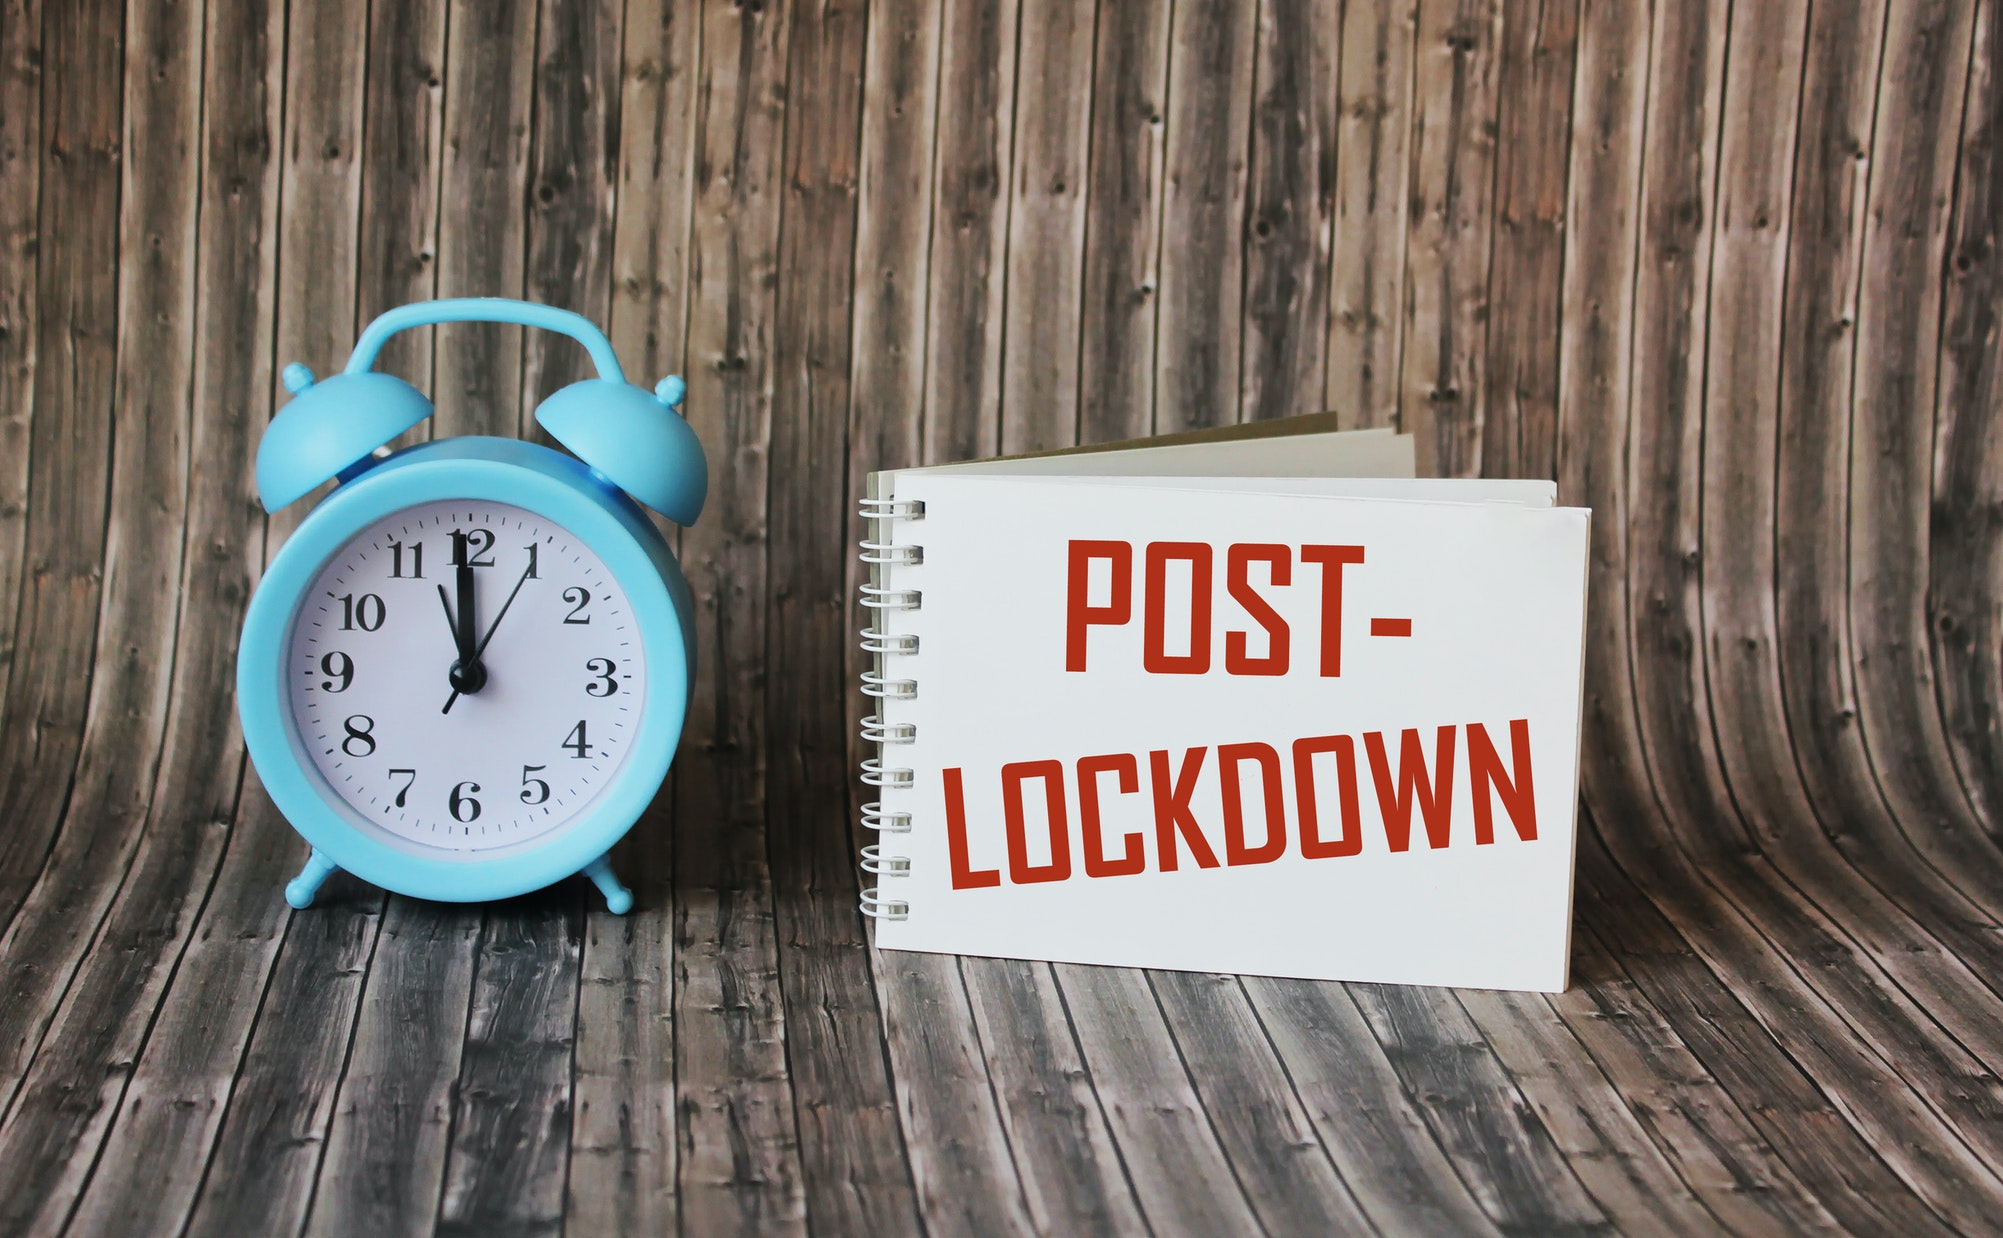 5 Procedures Patients Are Increasingly Interested In Post-Lockdown